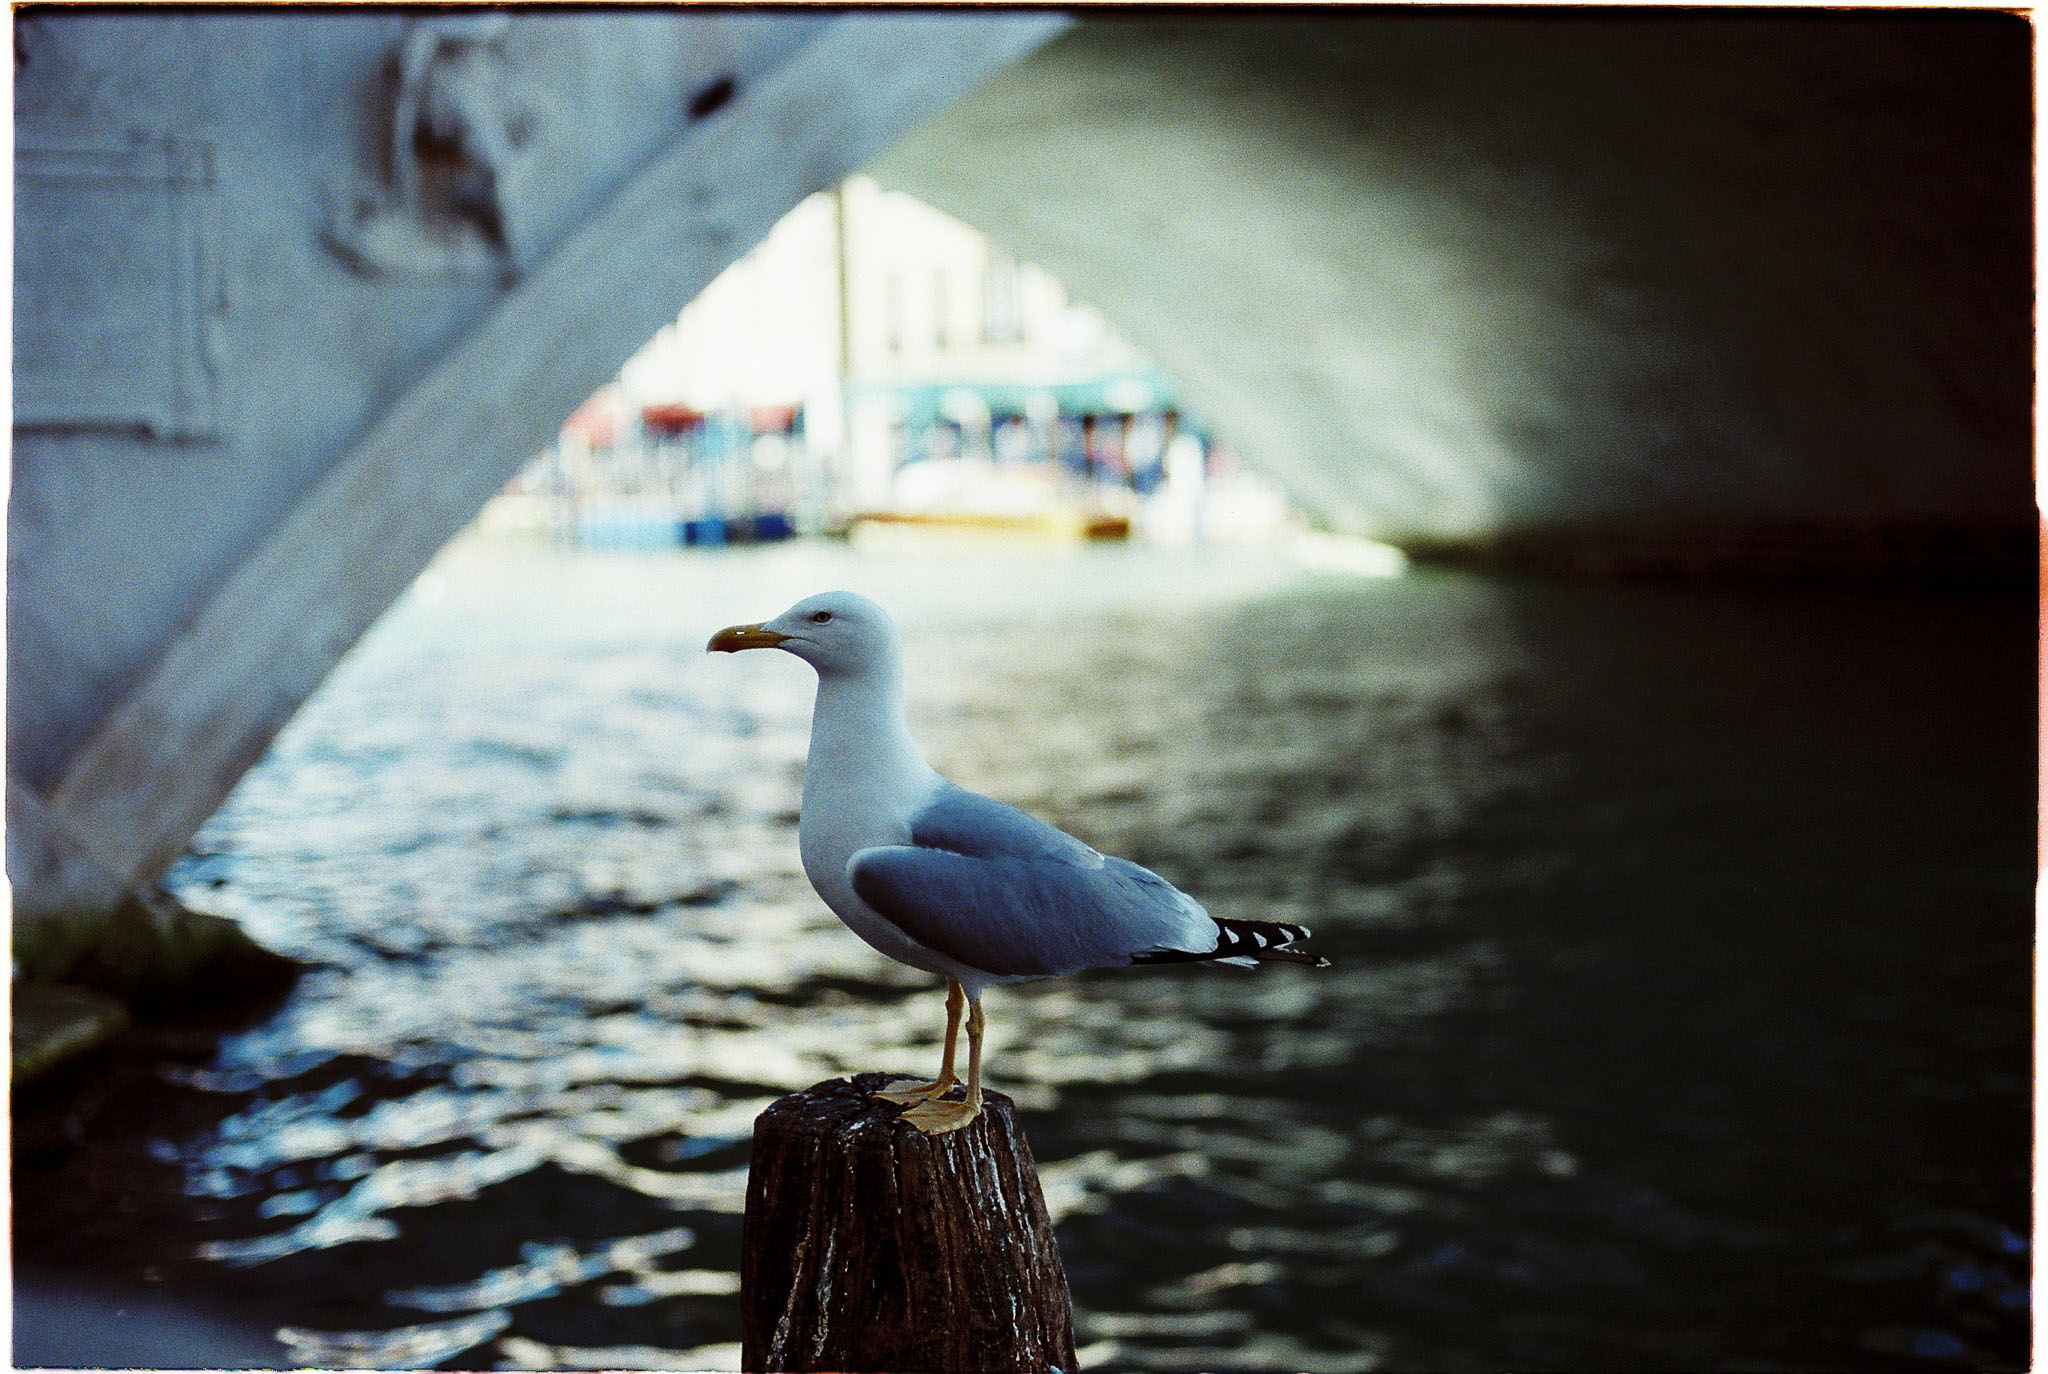 Gull in Venice Grand canal expired film agfa vista 100